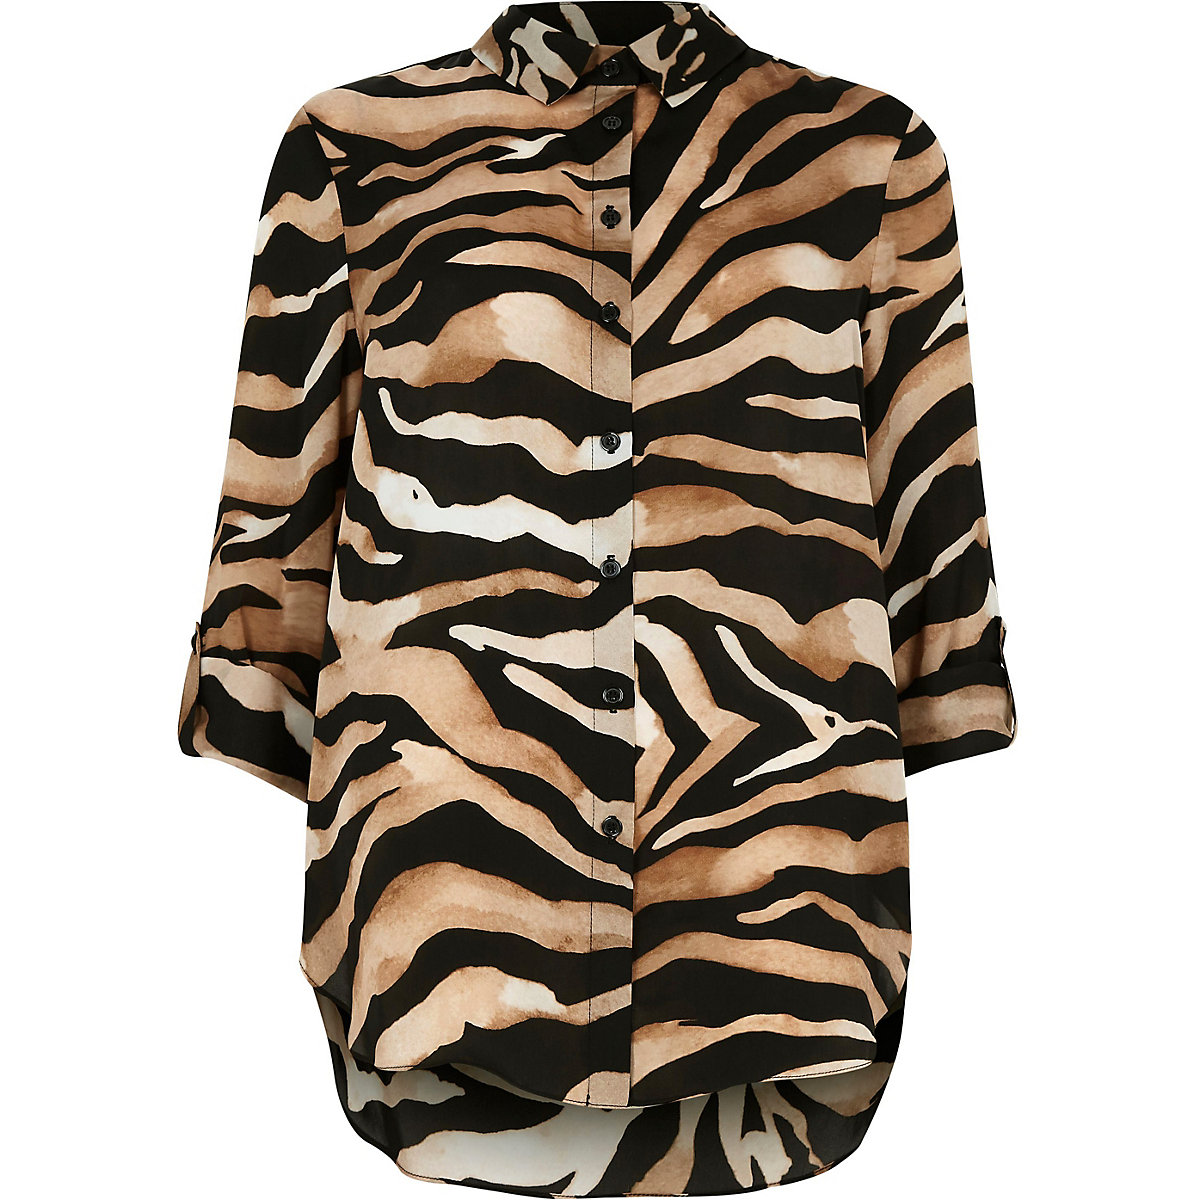 brown zebra print oversized button up shirt shirts tops women